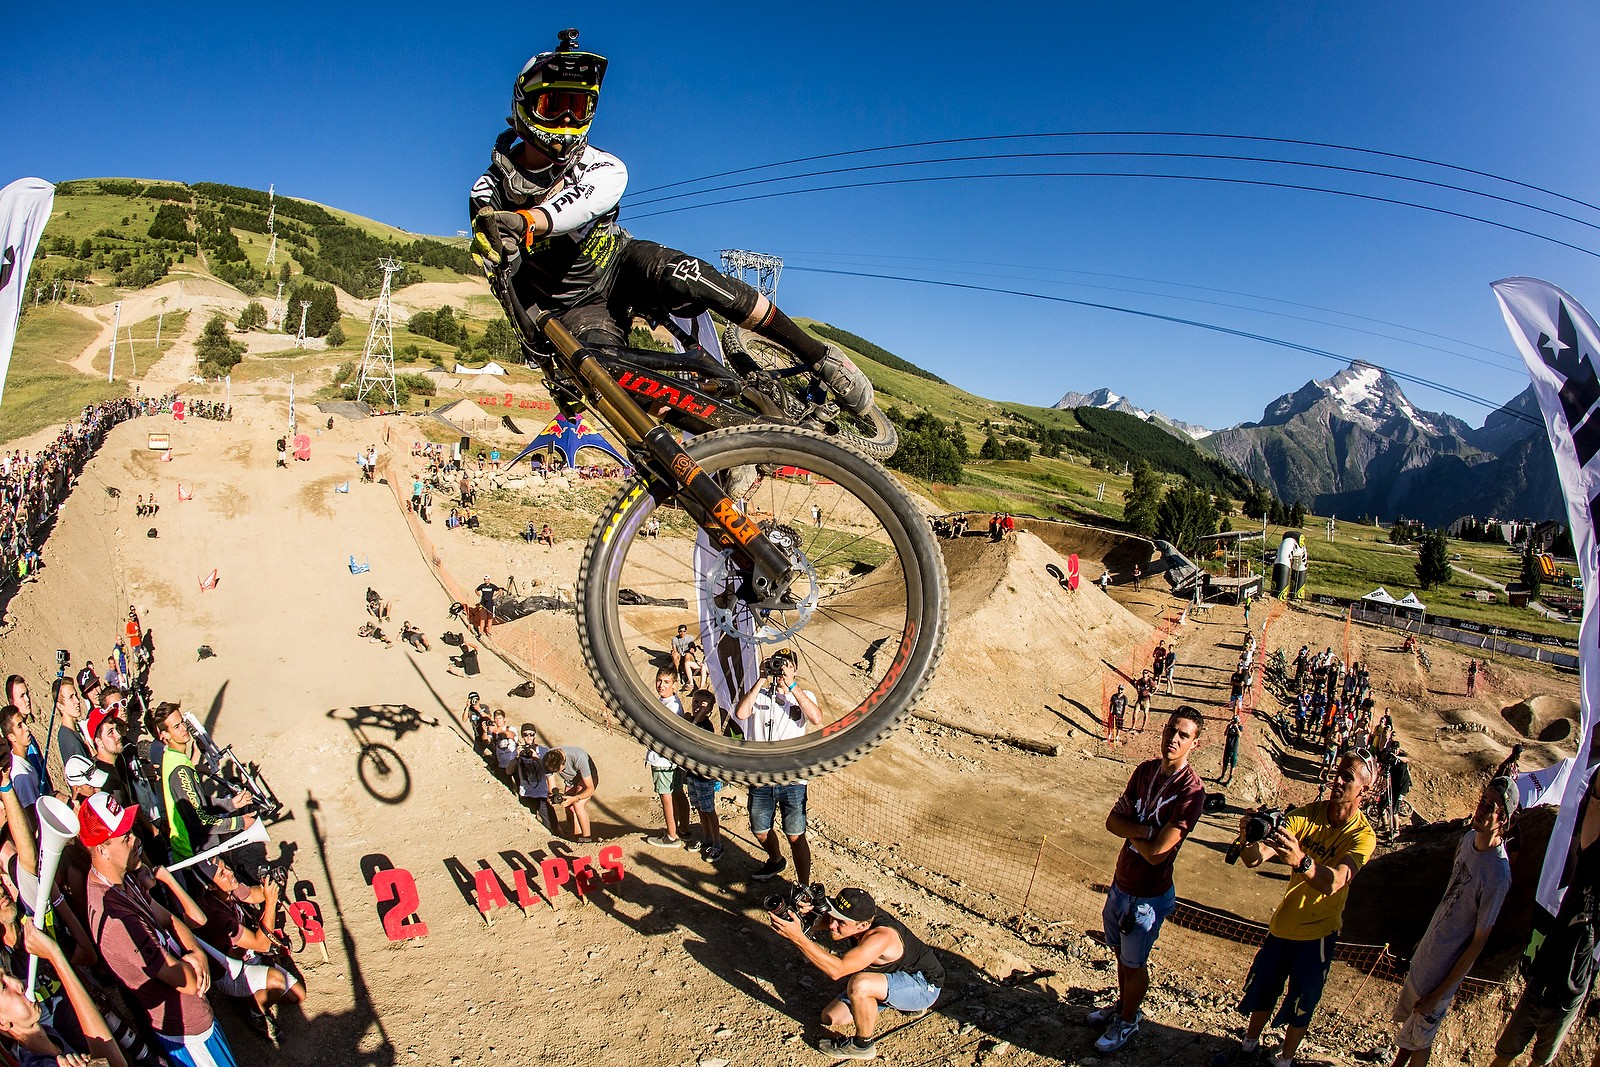 Bernard Kerr, Whip Off European Champs, Crankworx L2A - Whip Off European Champs, Crankworx L2A - Mountain Biking Pictures - Vital MTB